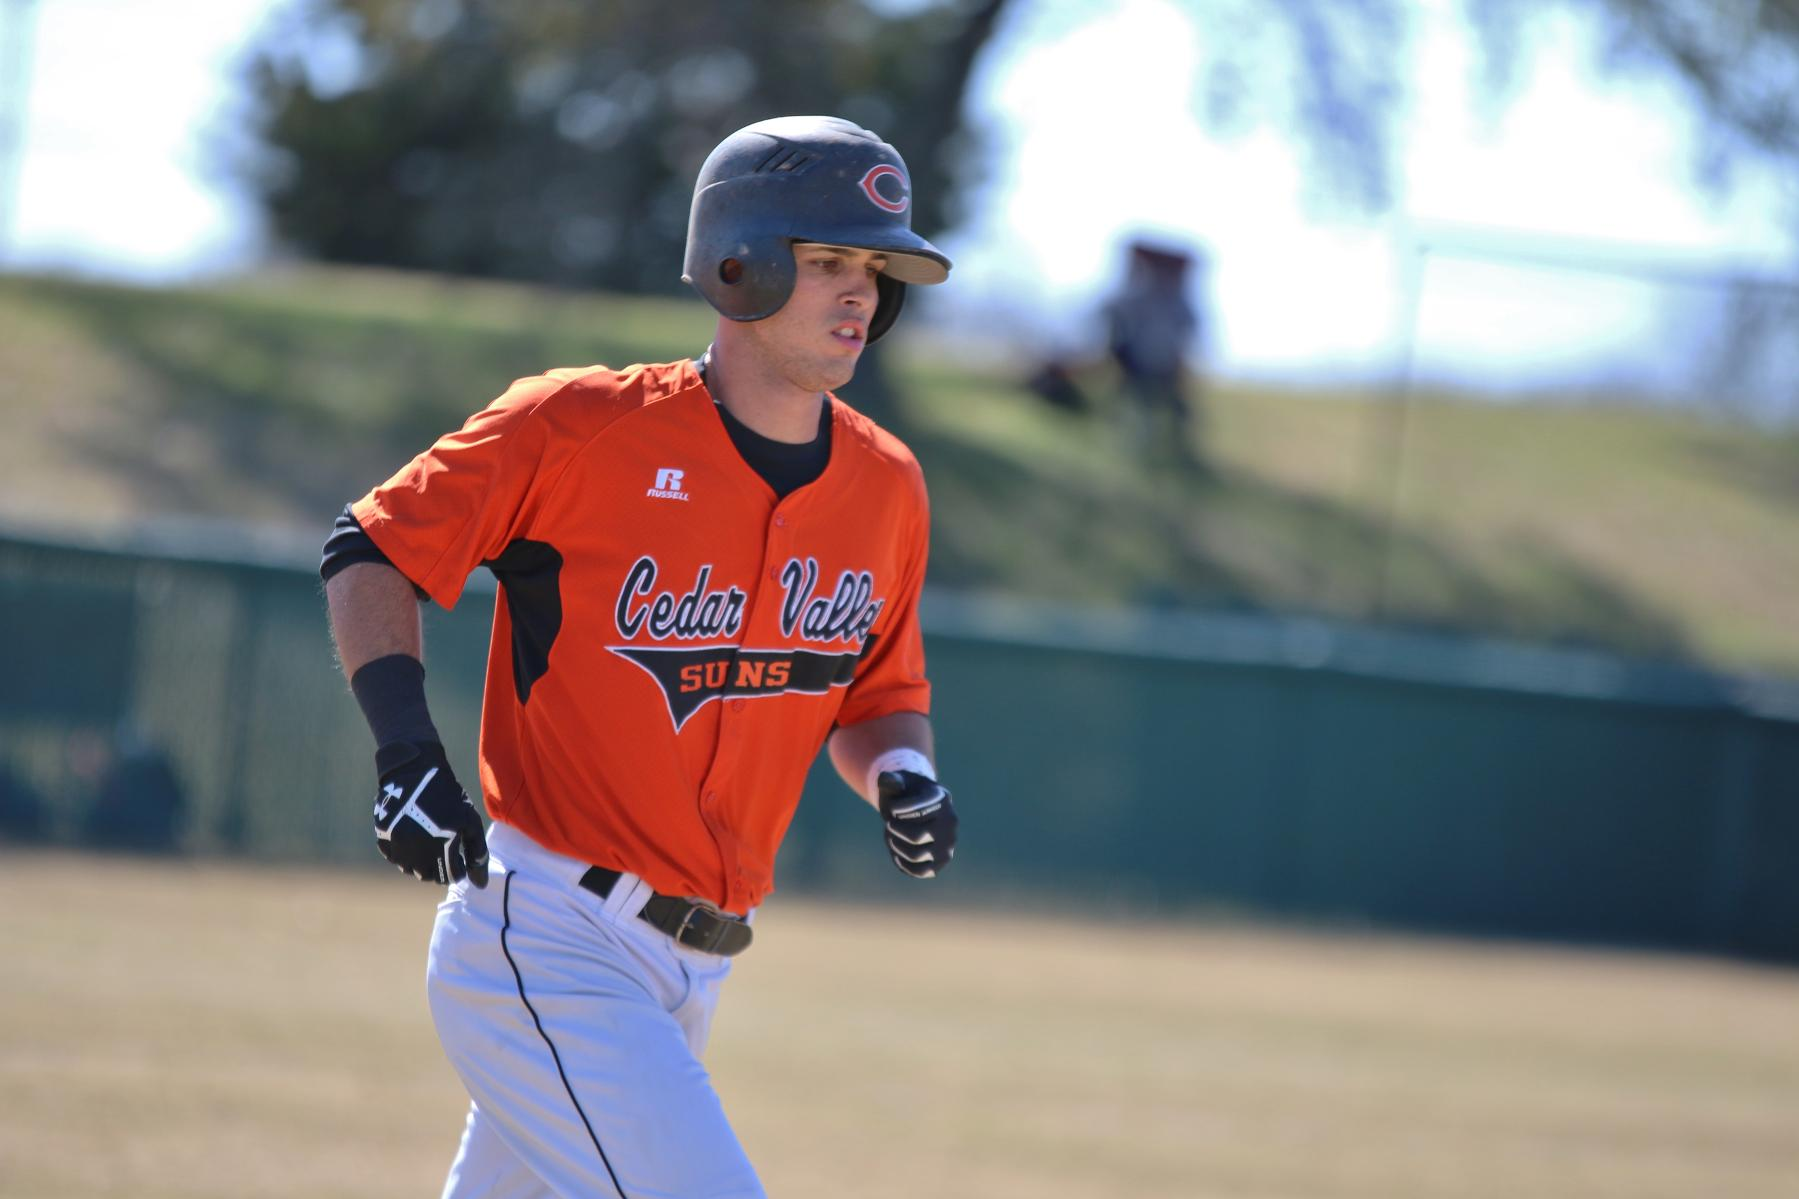 Suns Baseball Get Big Win in Mountain View Series - Cedar Valley ...